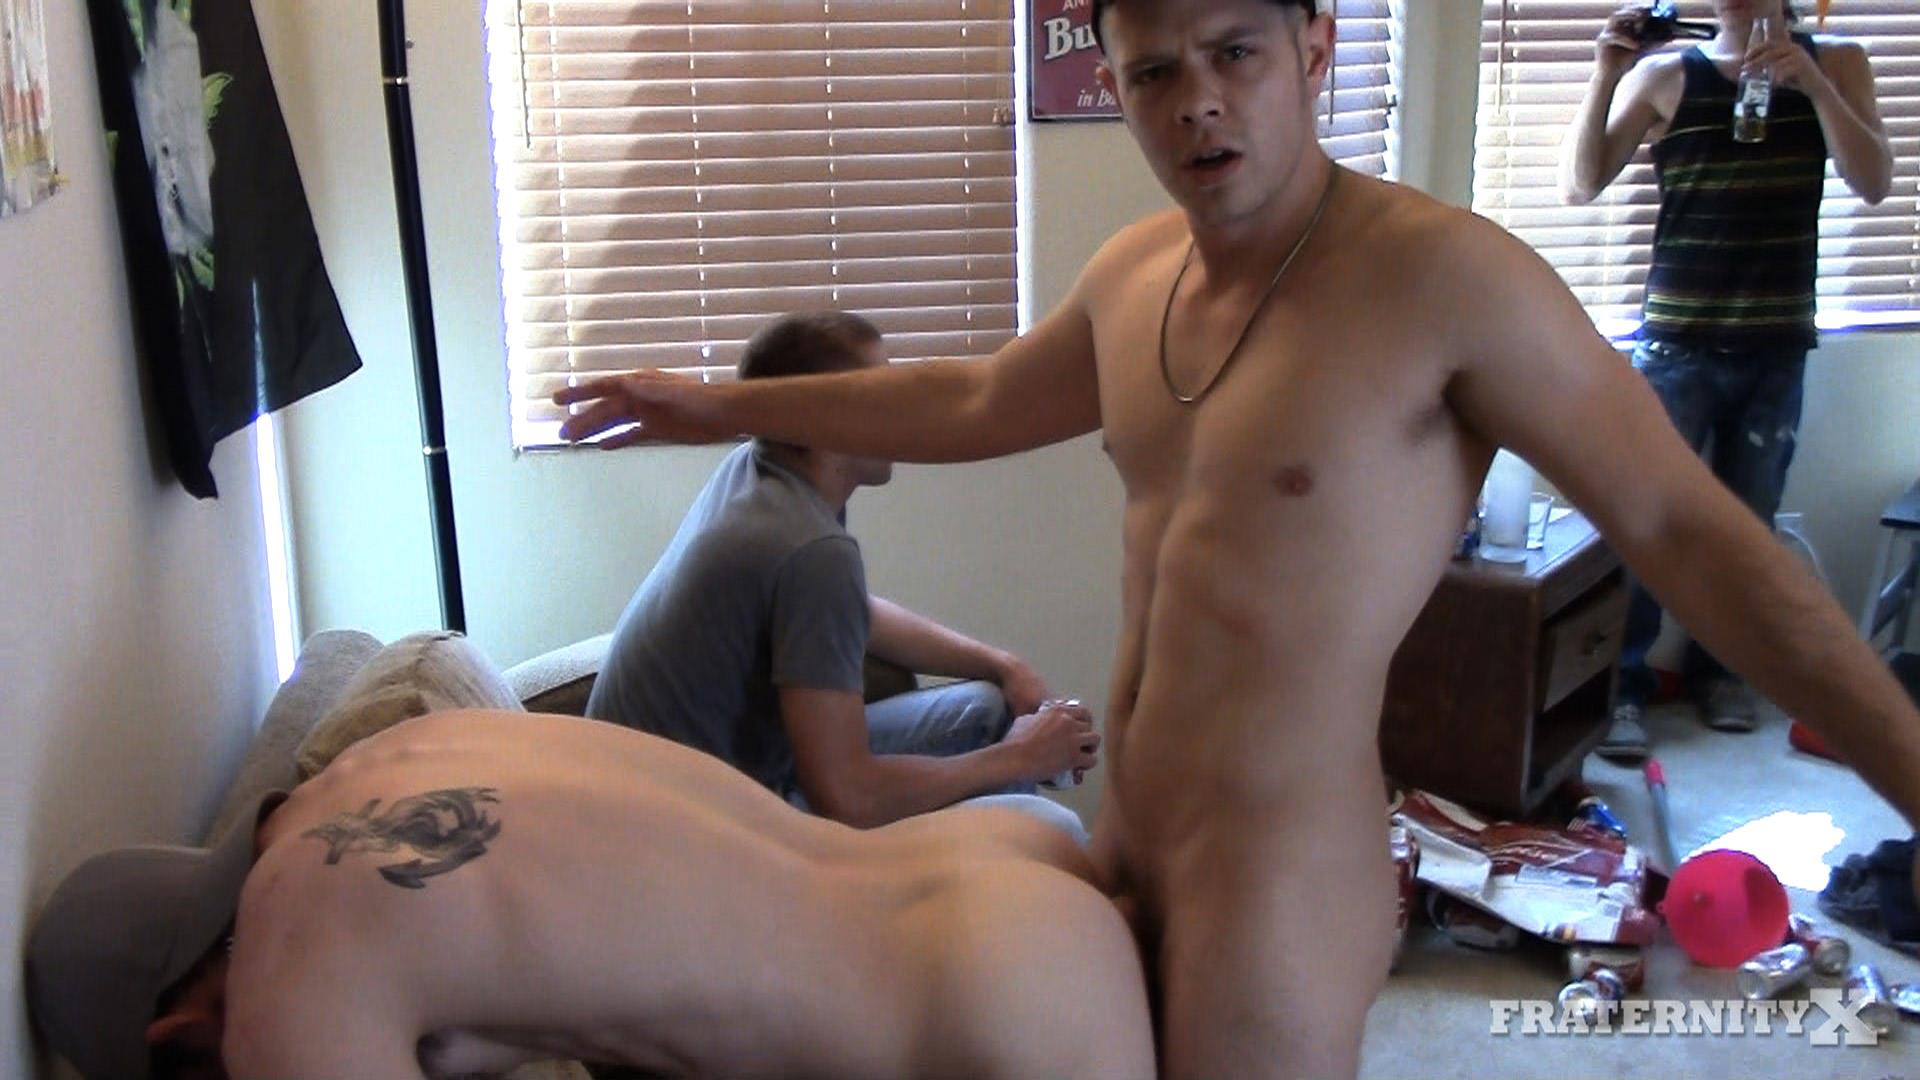 boys sex video and serbian gay porn videos Damien Diego